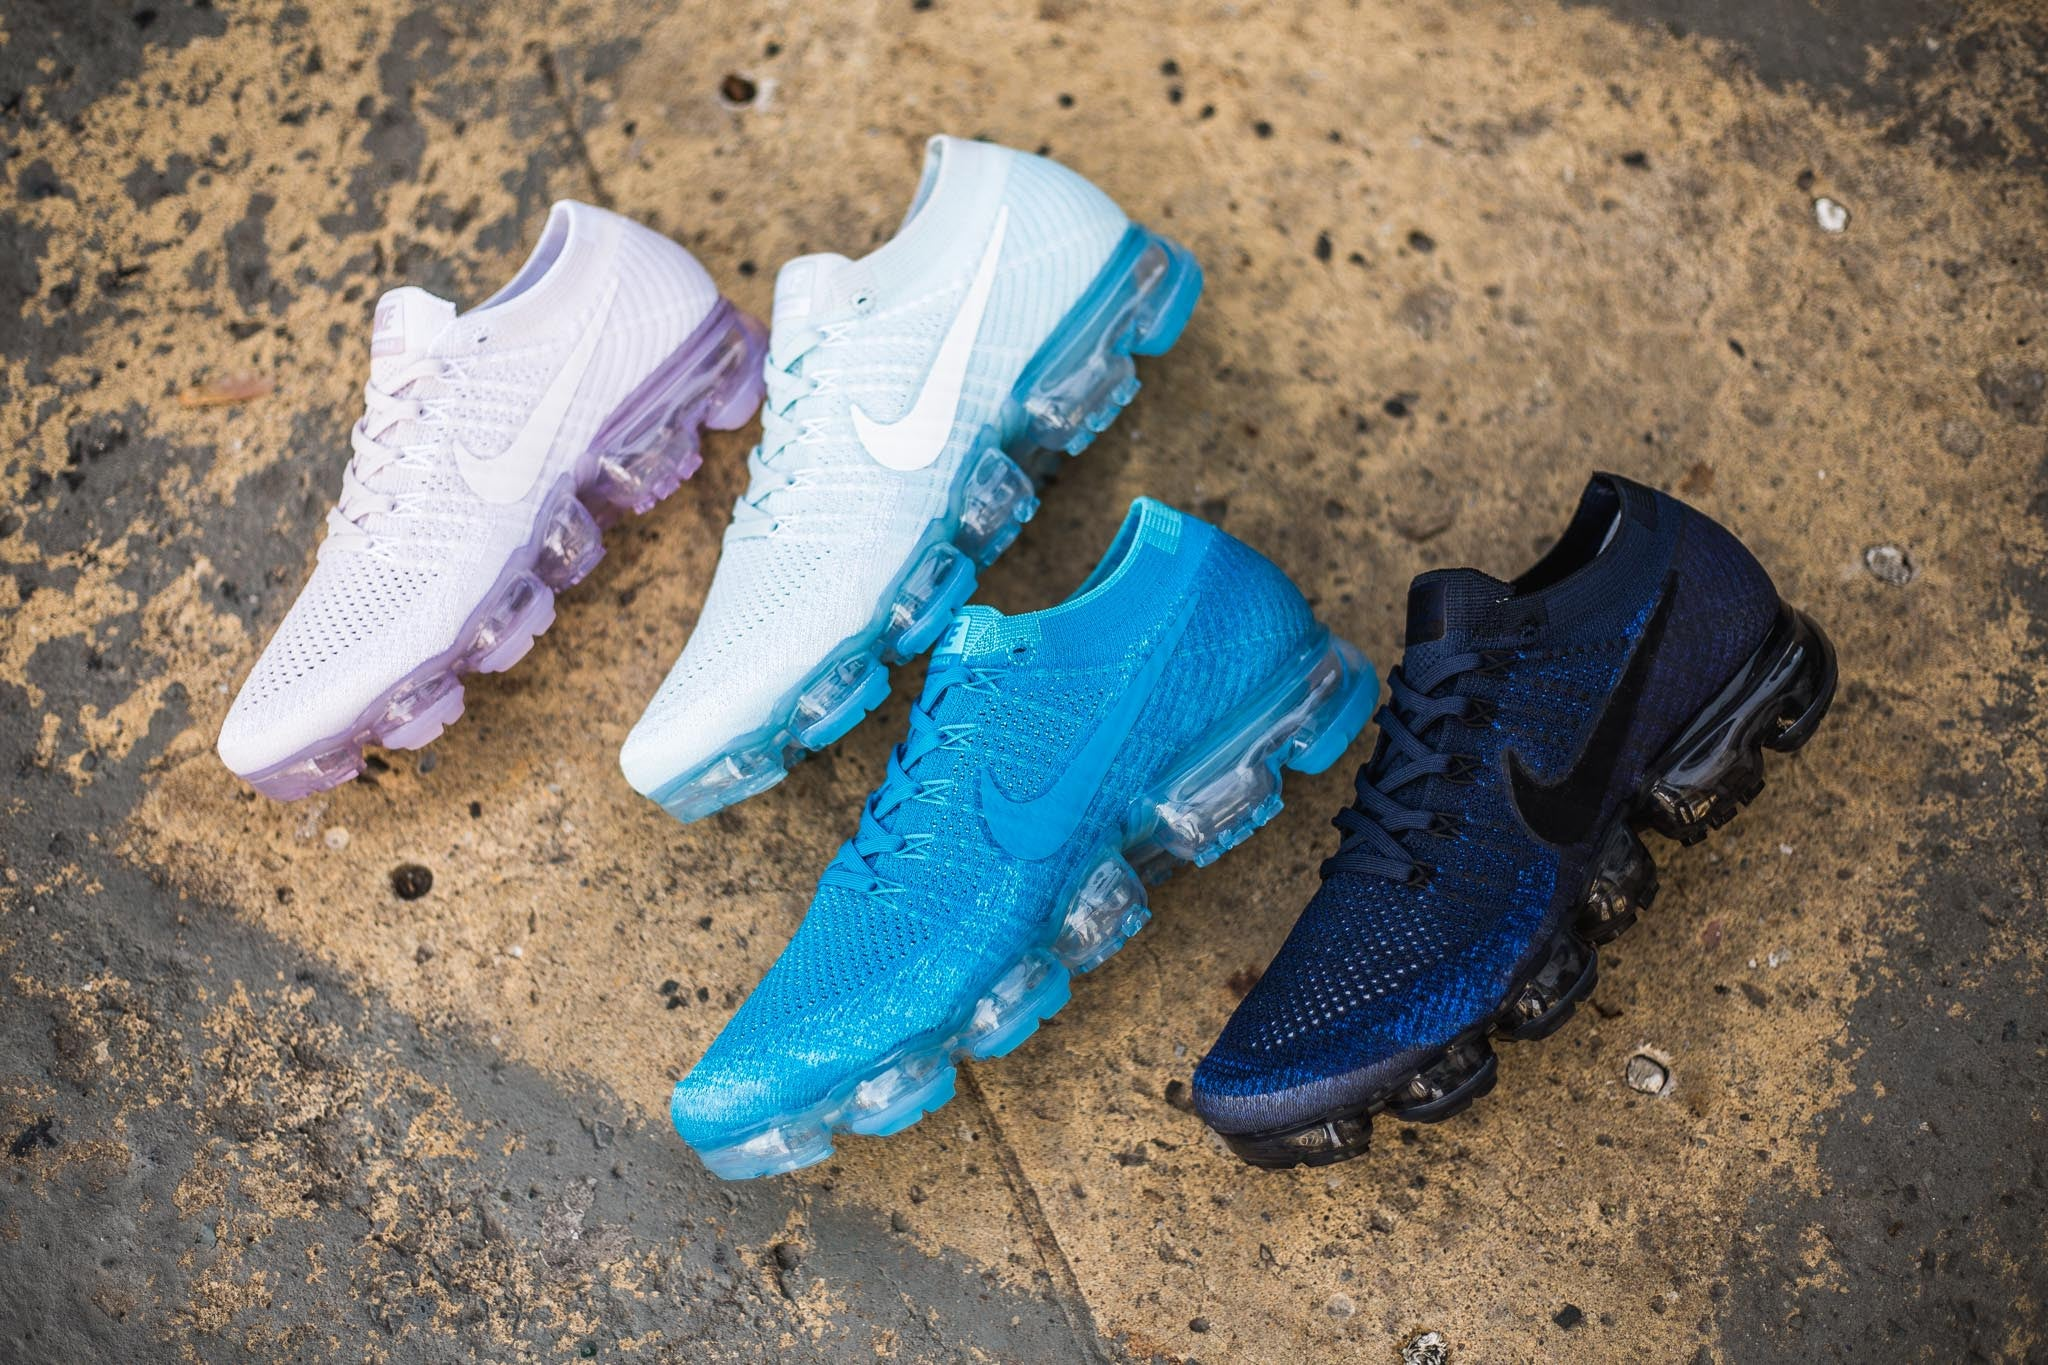 """f8f239ea7a30d Nike's """"Day To Night"""" Collection paints the new addition to the Air Max  family tree with sky hues ranging from dusk till dawn. Each pair is  produced with a ..."""